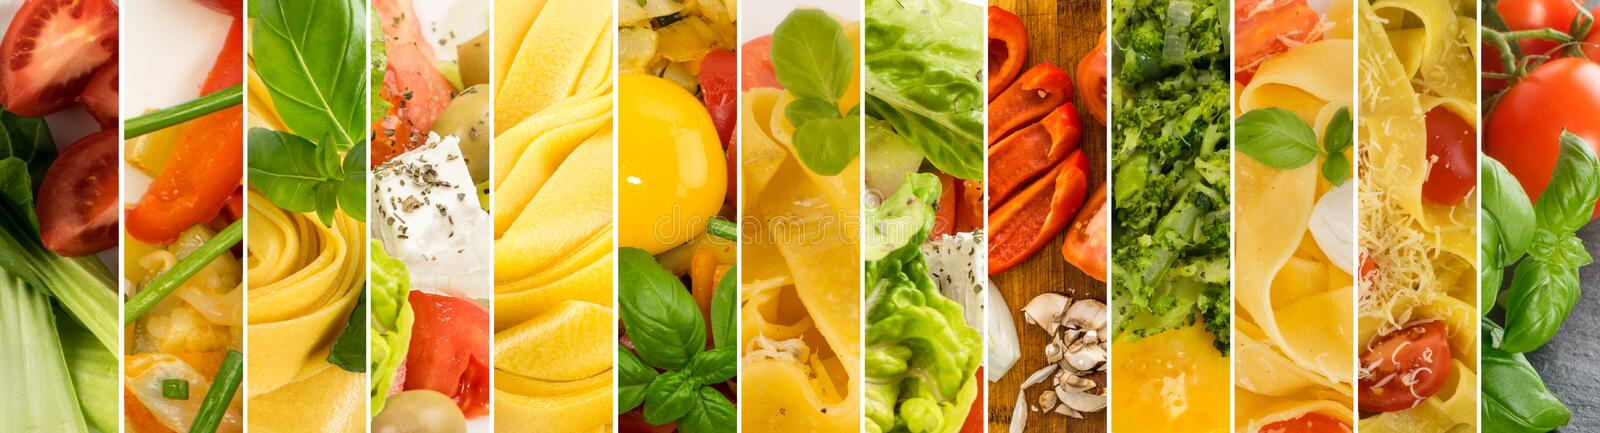 Various food collage with delicious burger, pasta and vegetables stock images